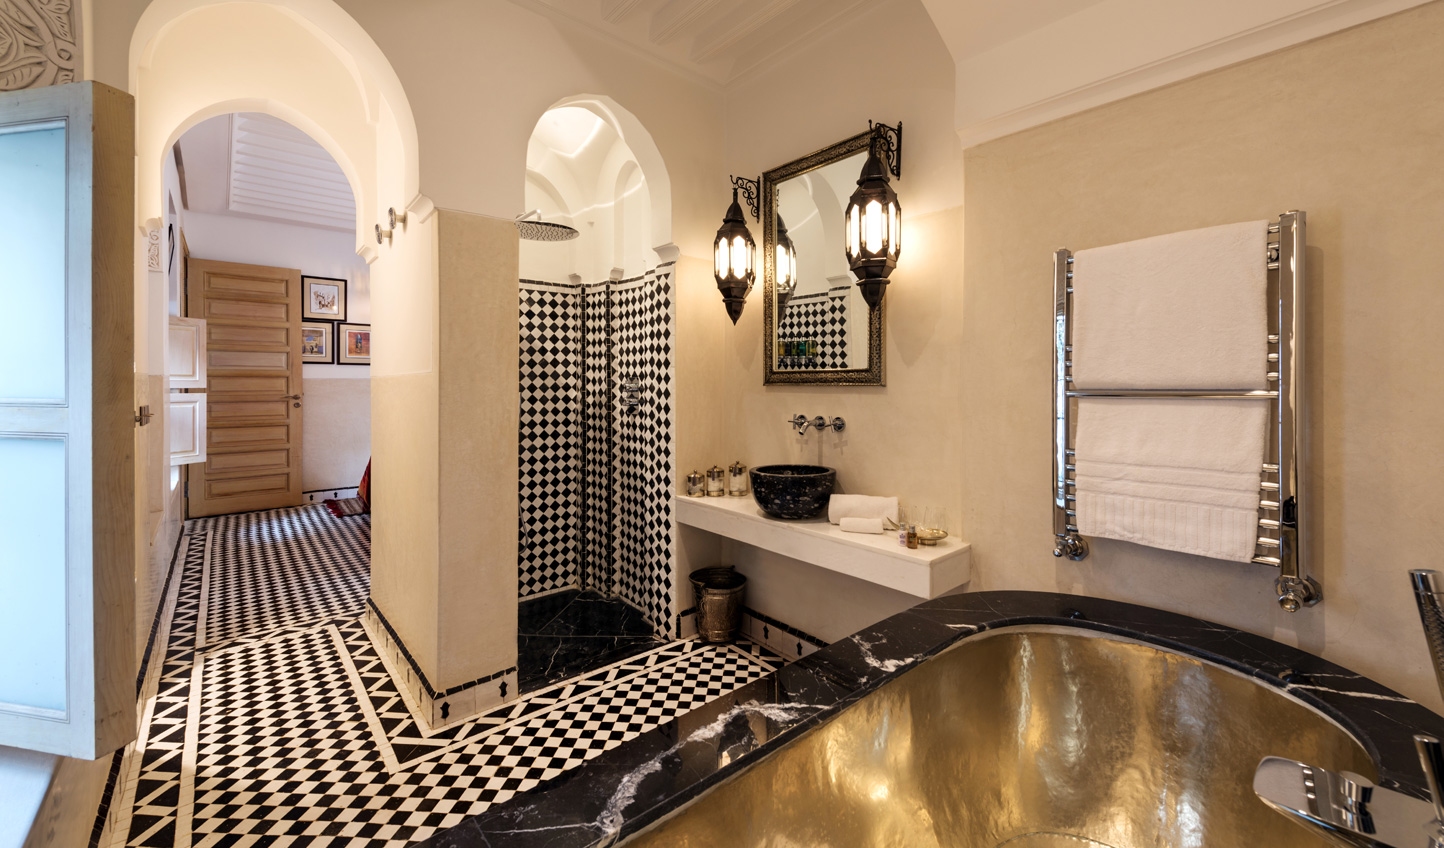 Intricate Moroccan decor gives added decadence